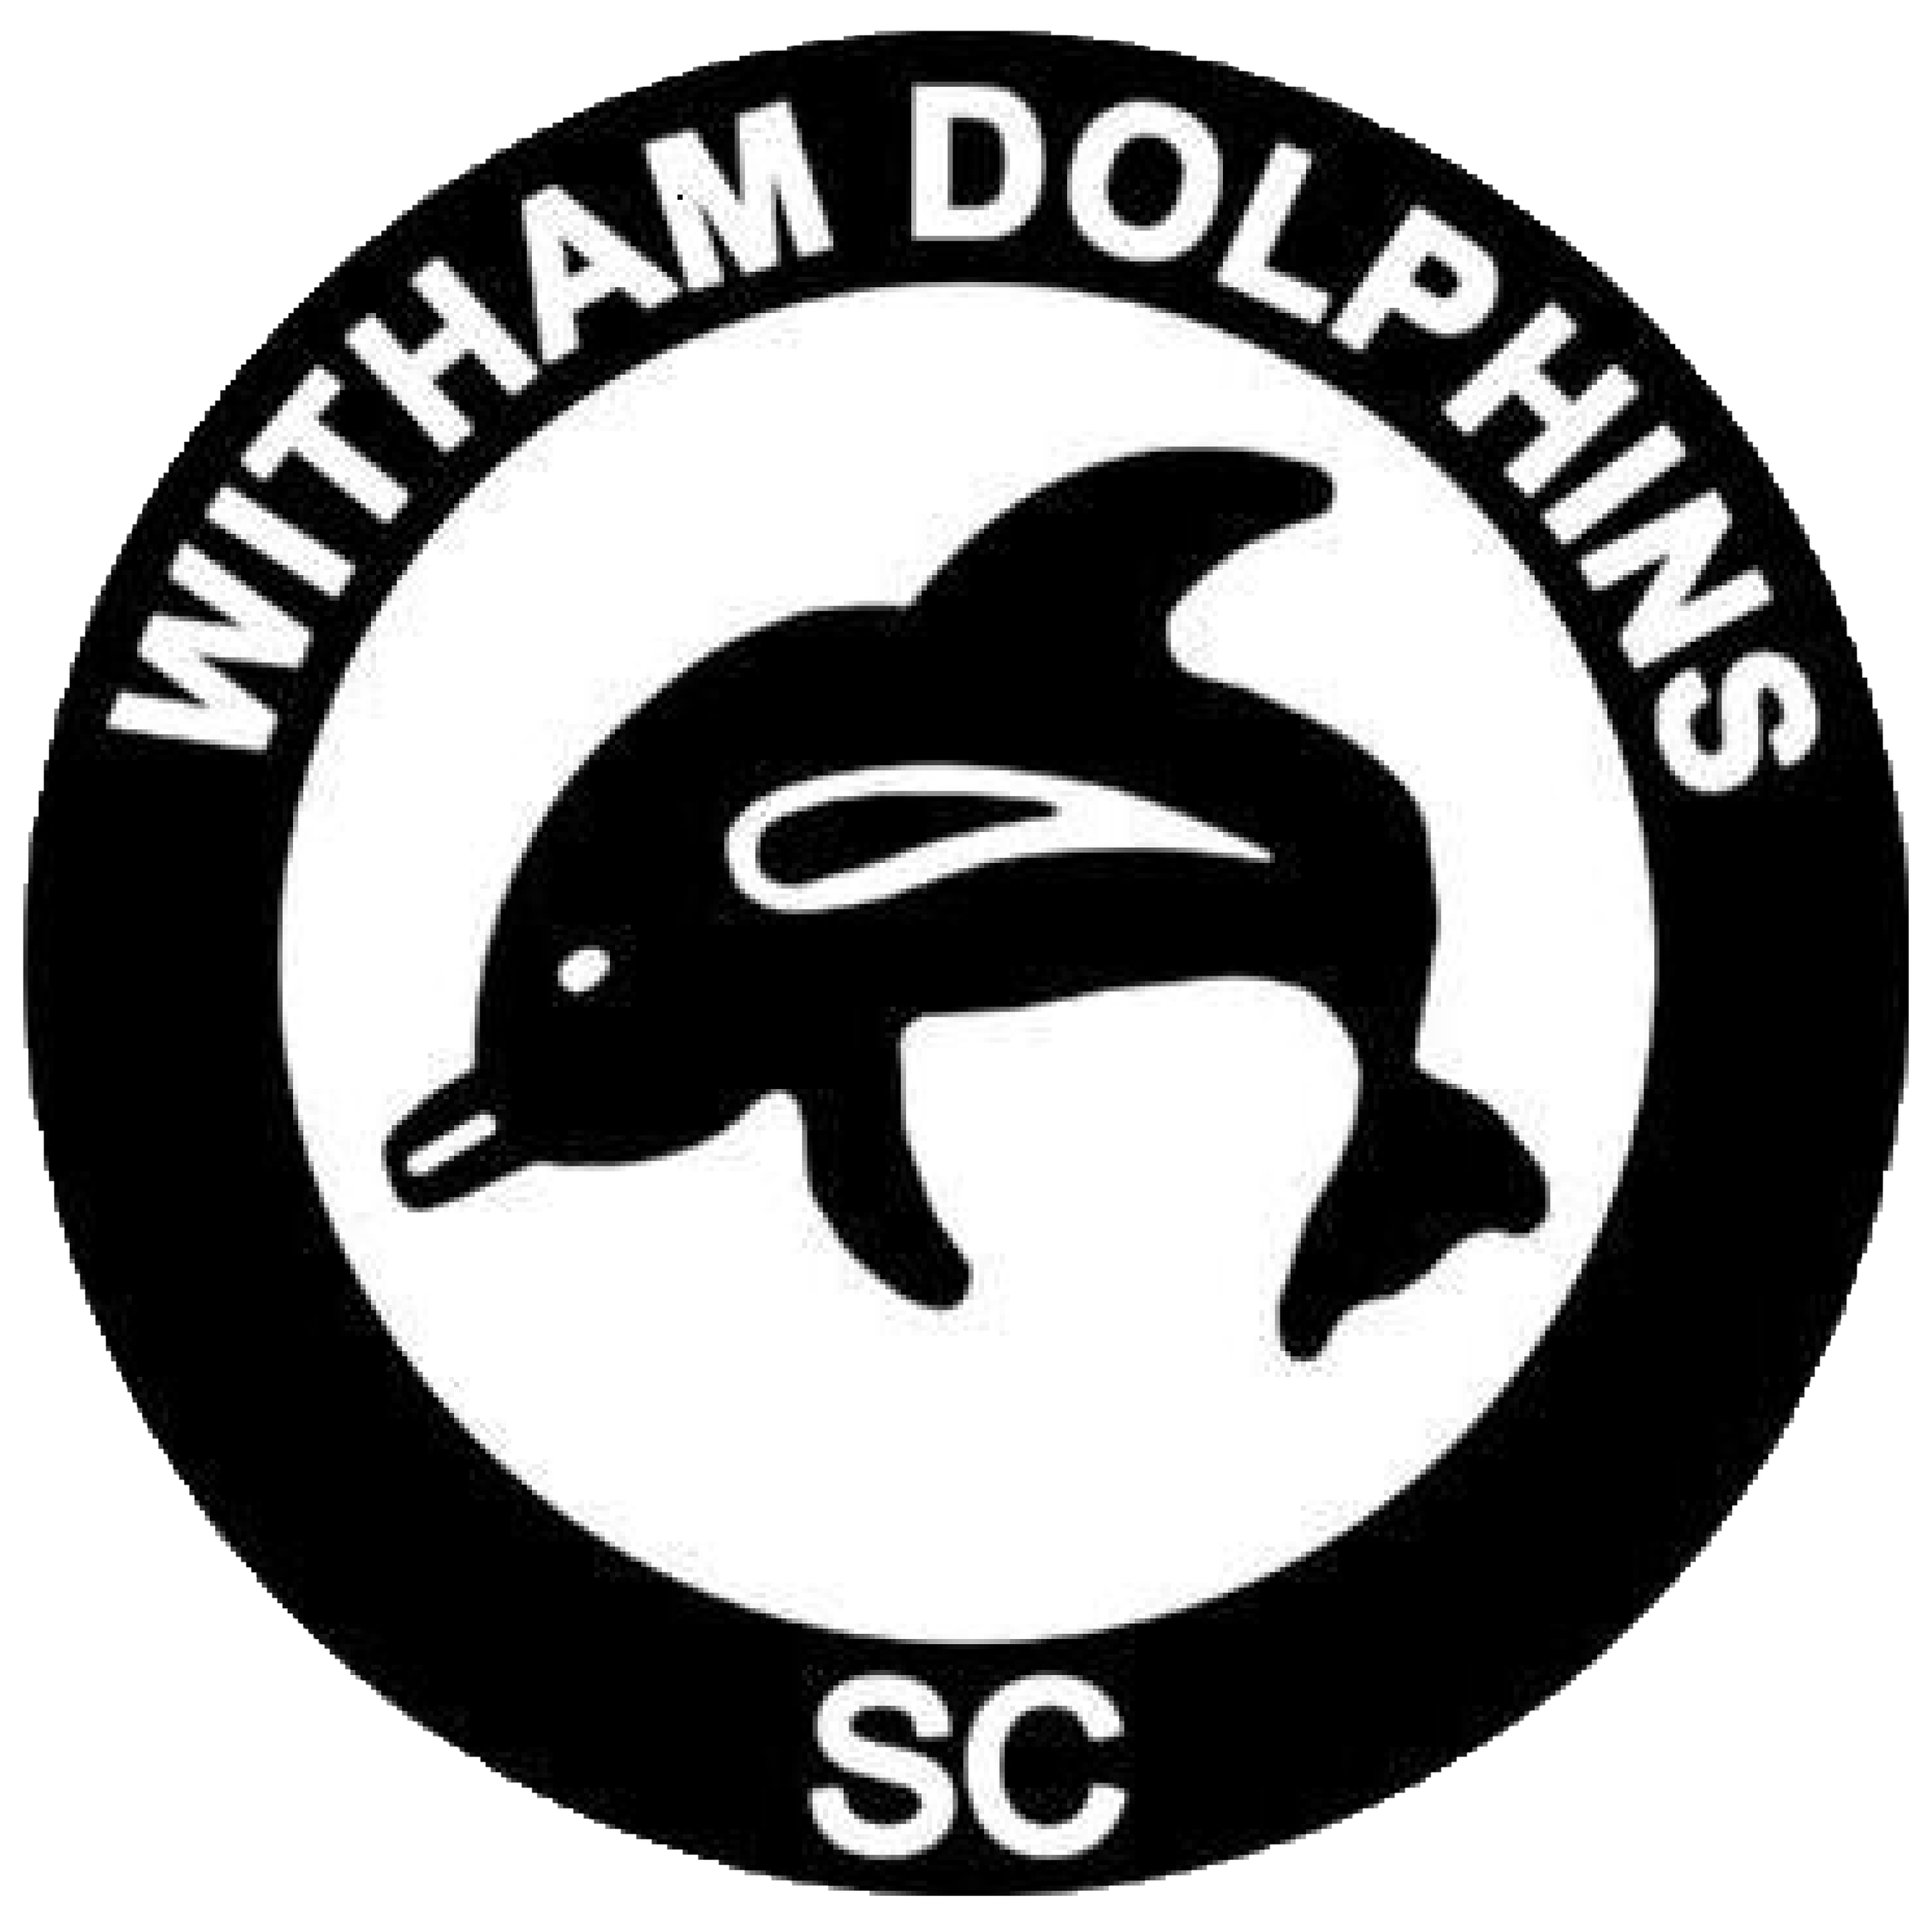 Witham Dolphins